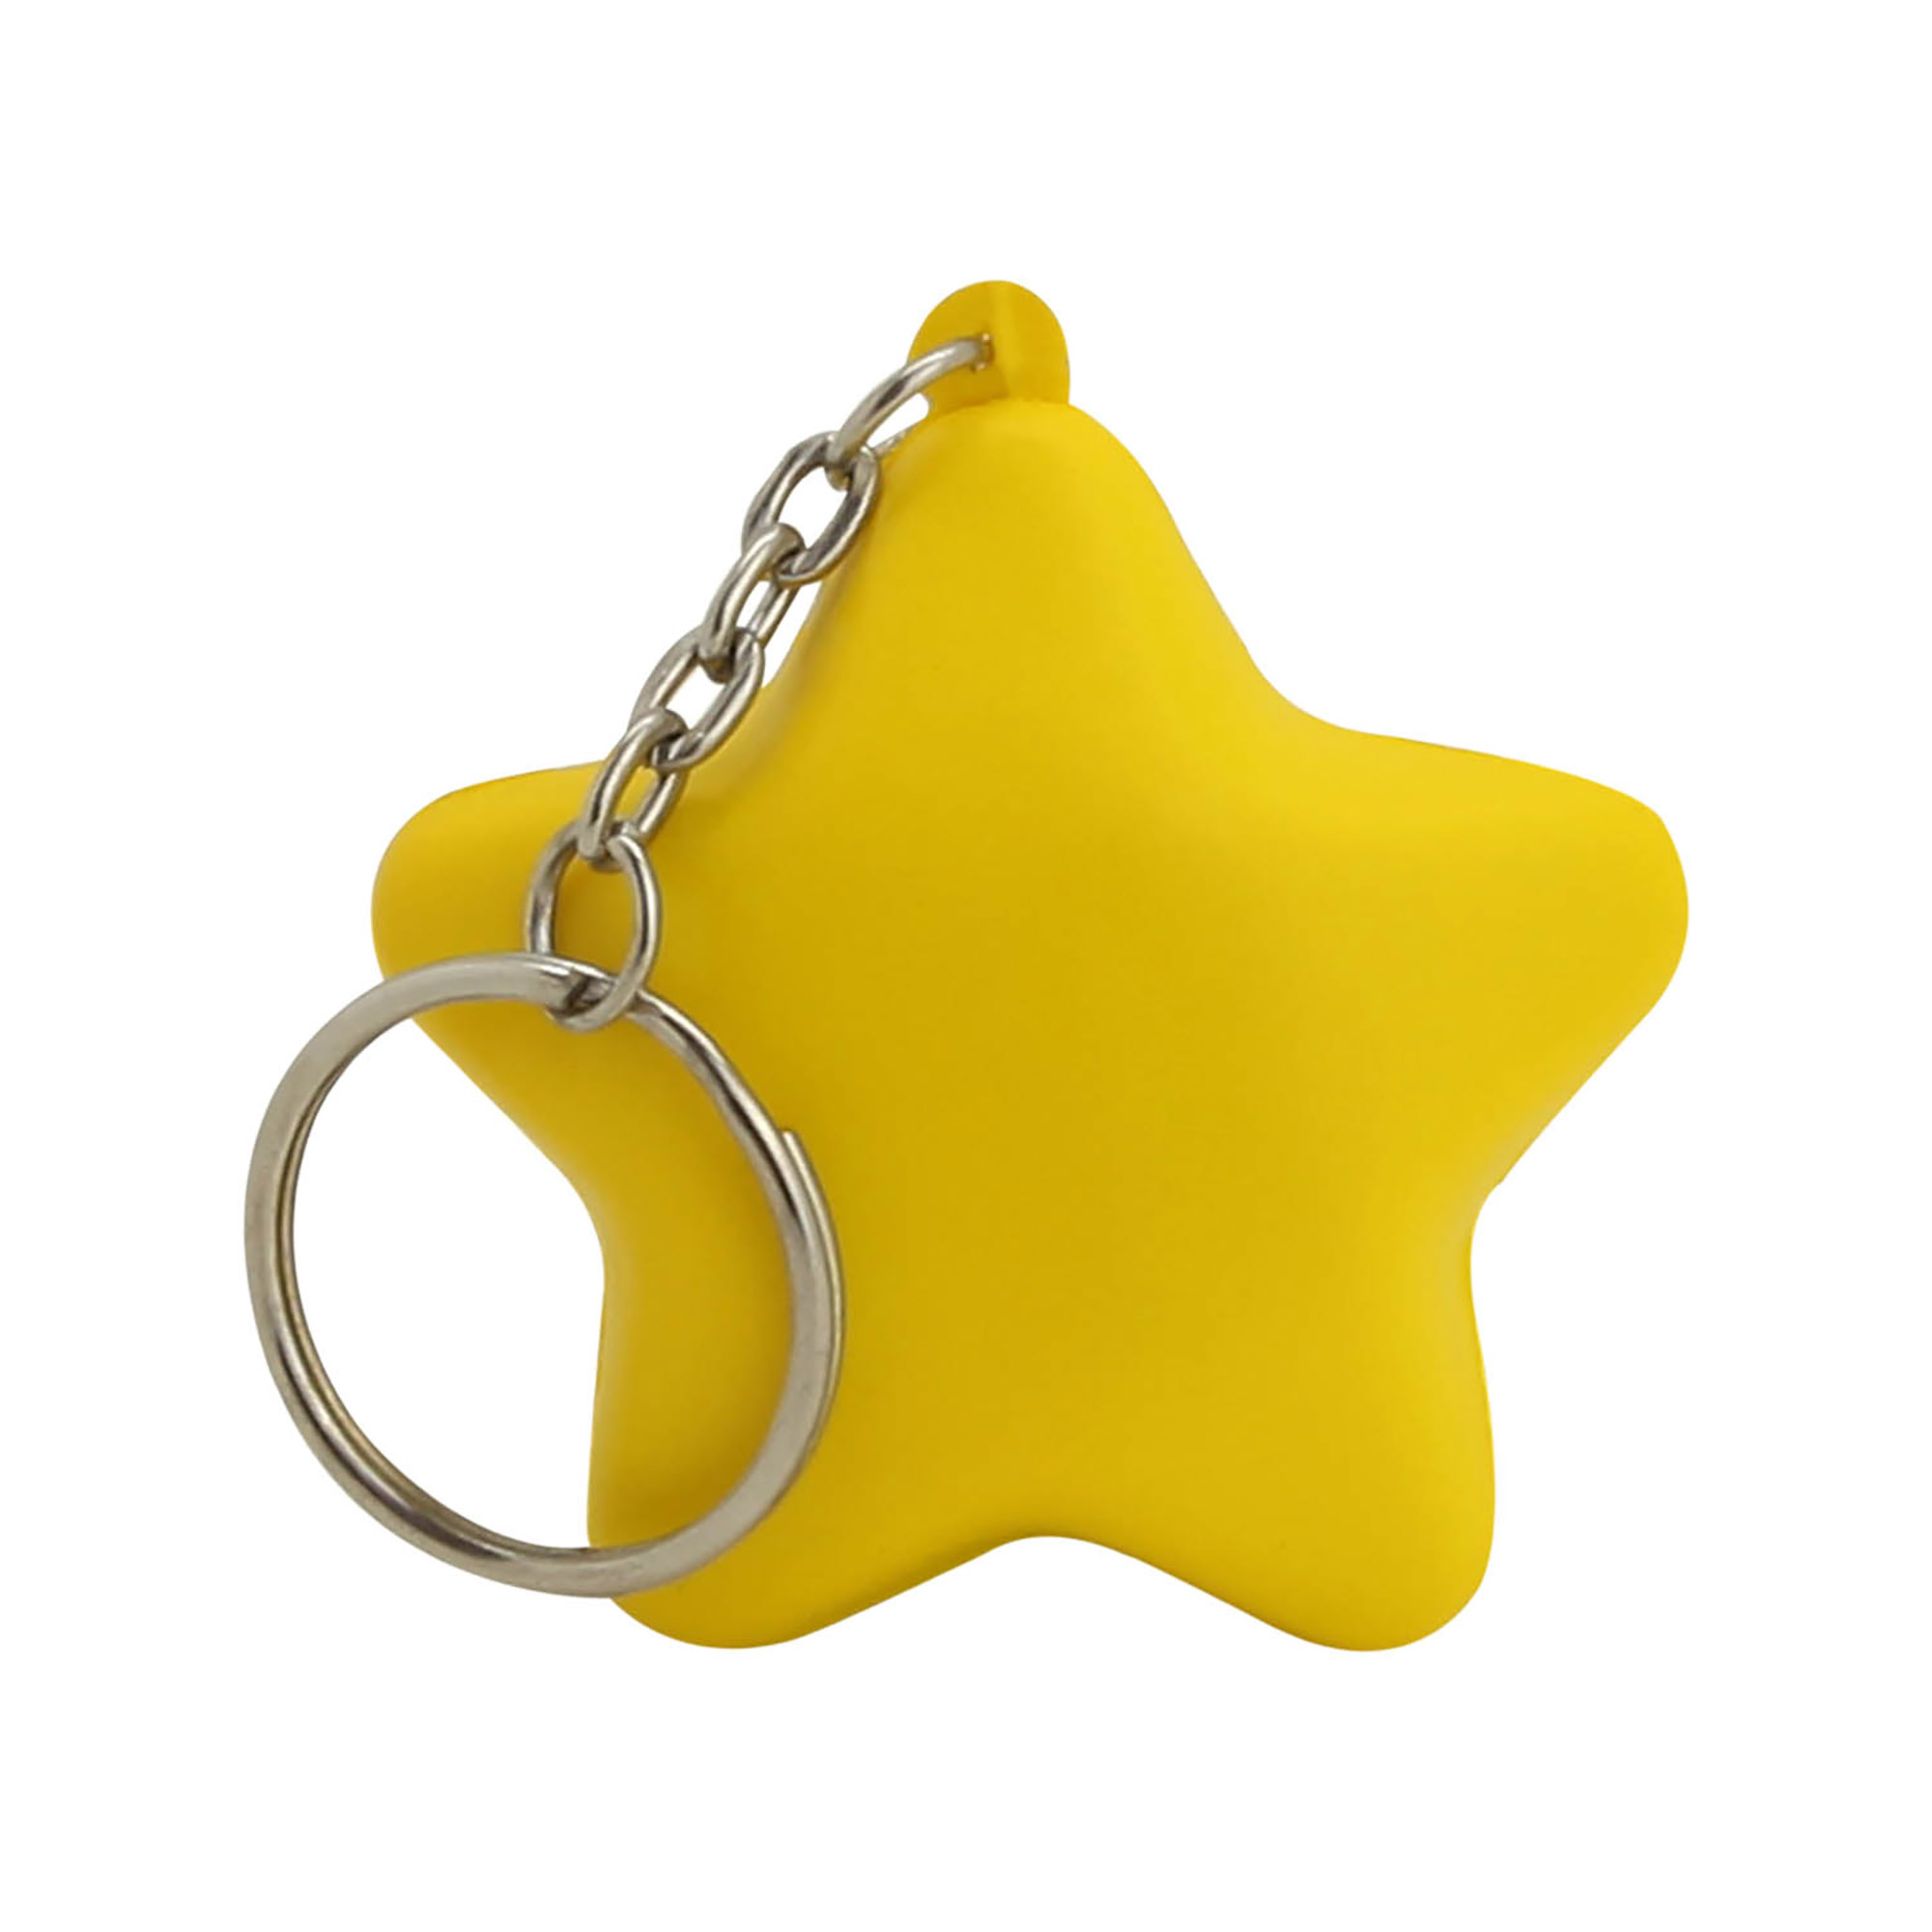 STRESS STAR KEYRING - 1 Colour Print, From $0.56